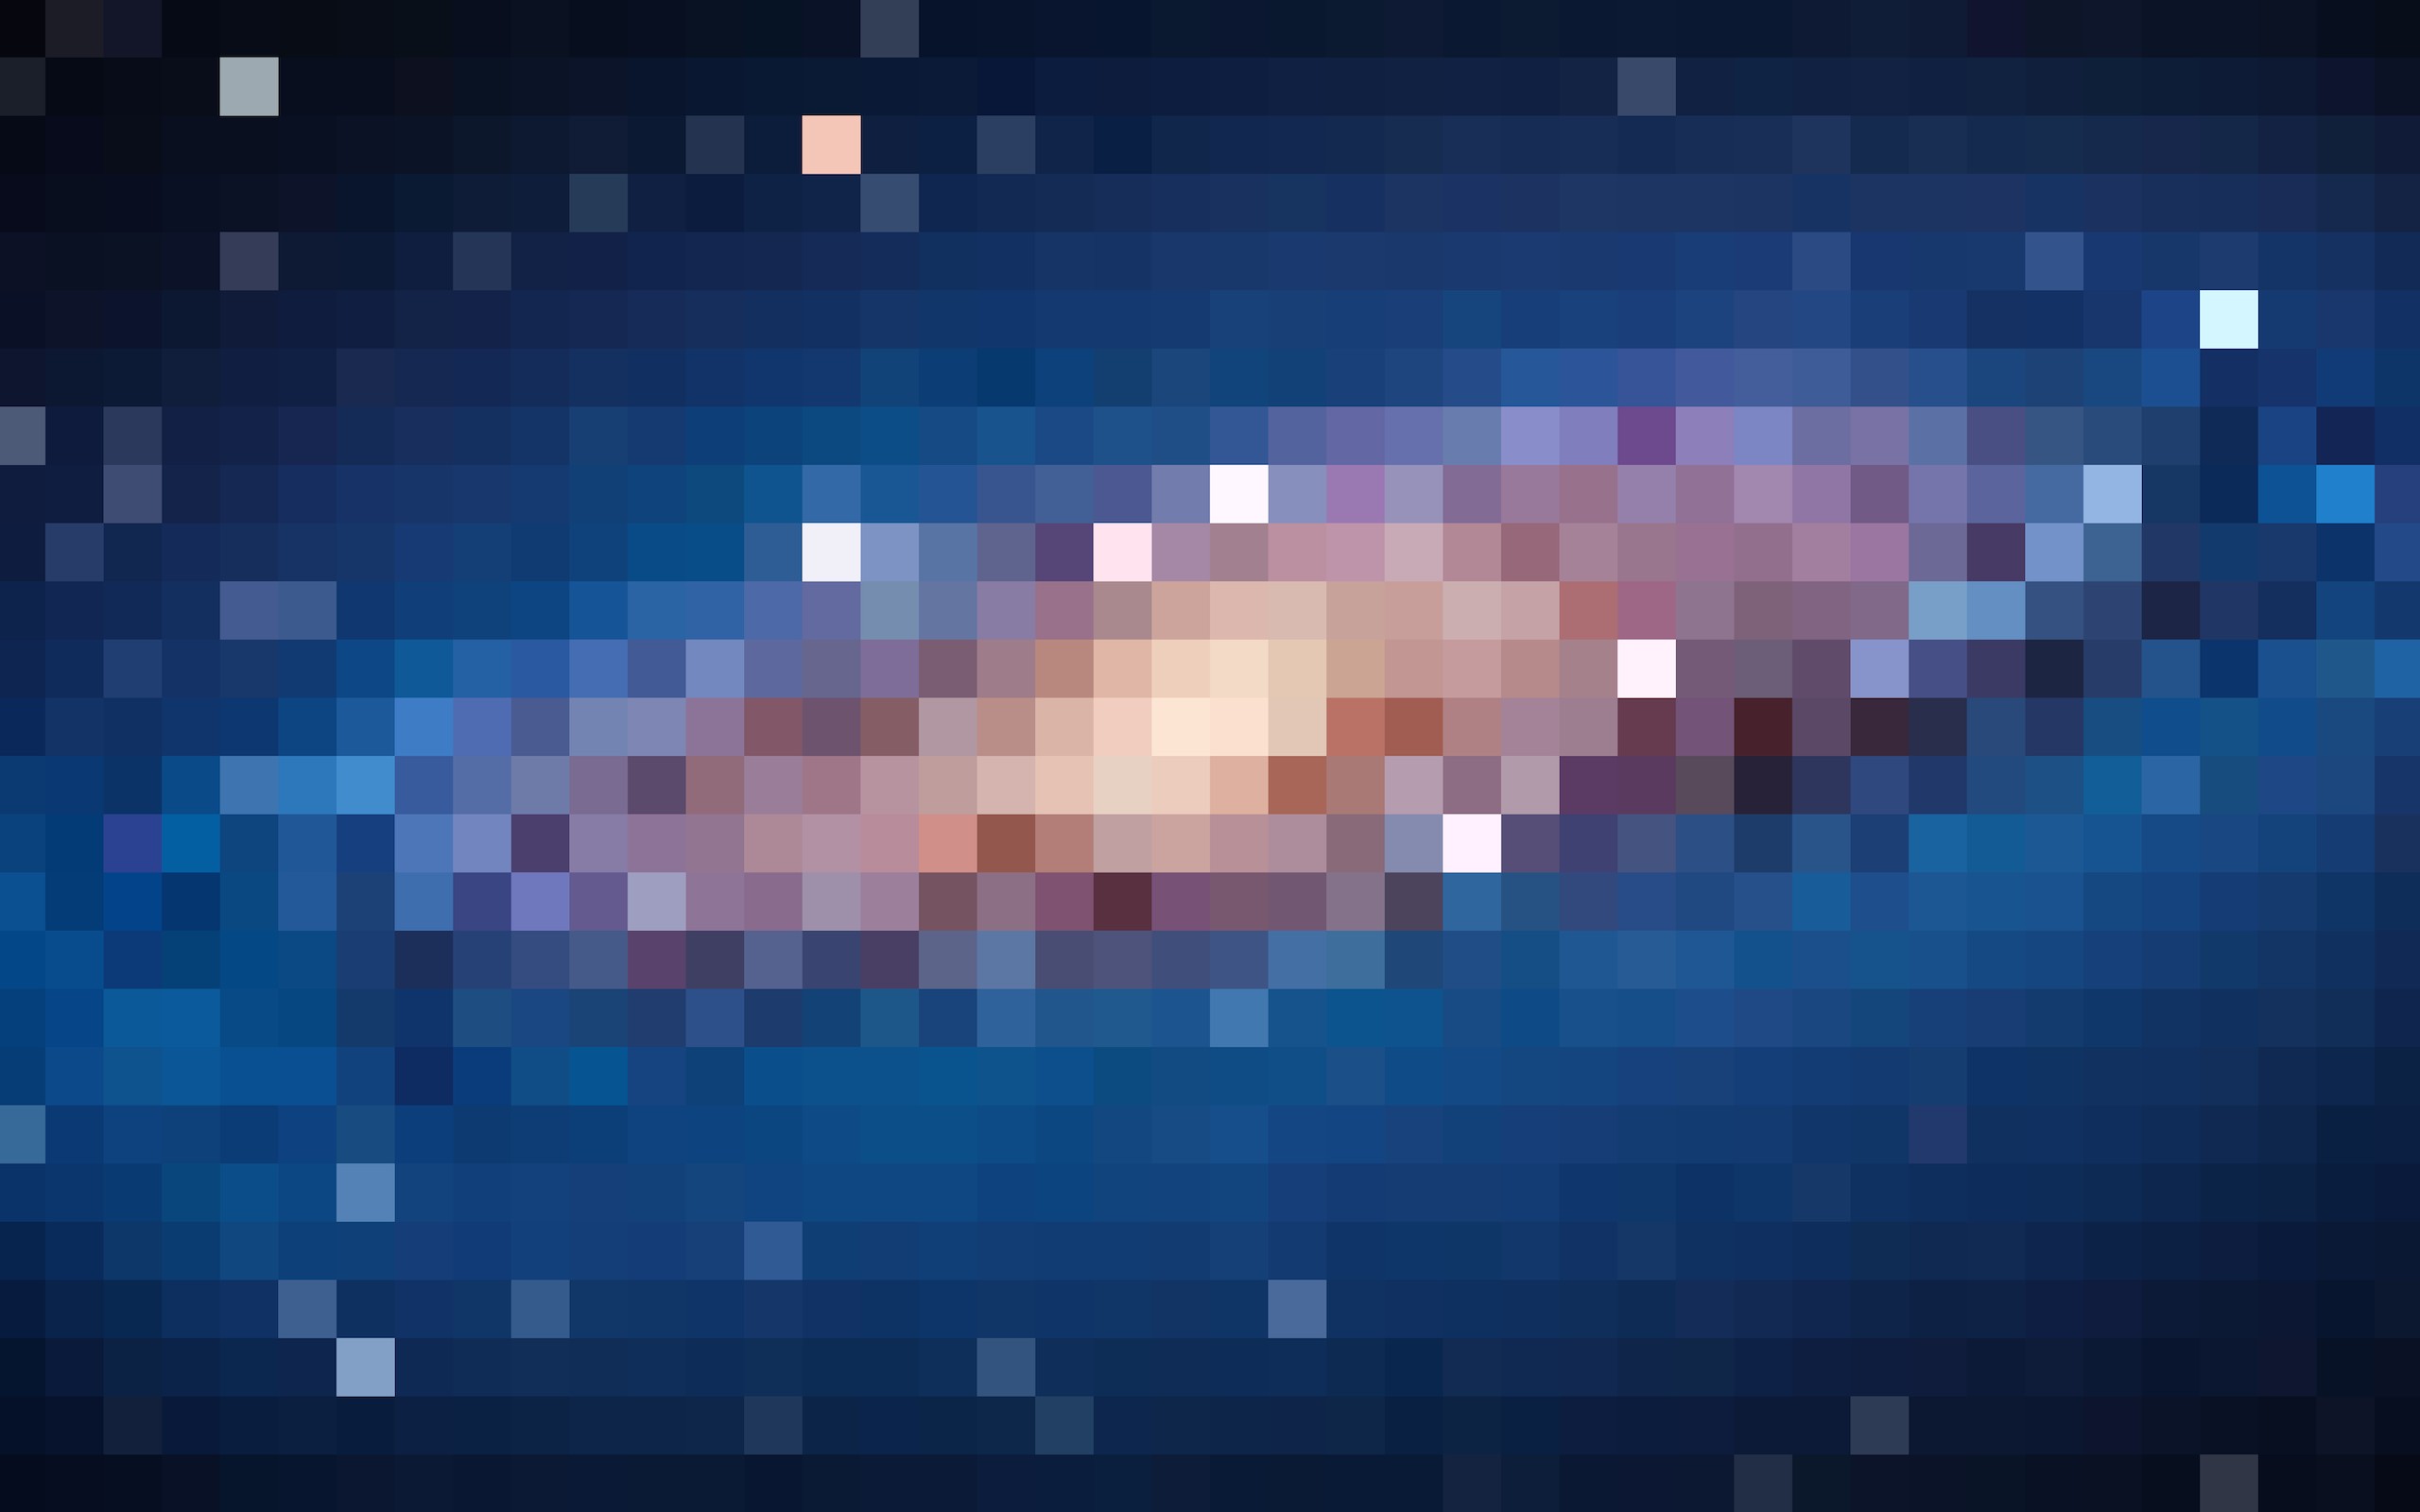 recreate the andromeda galaxy in 8-bit pixel art on your lion